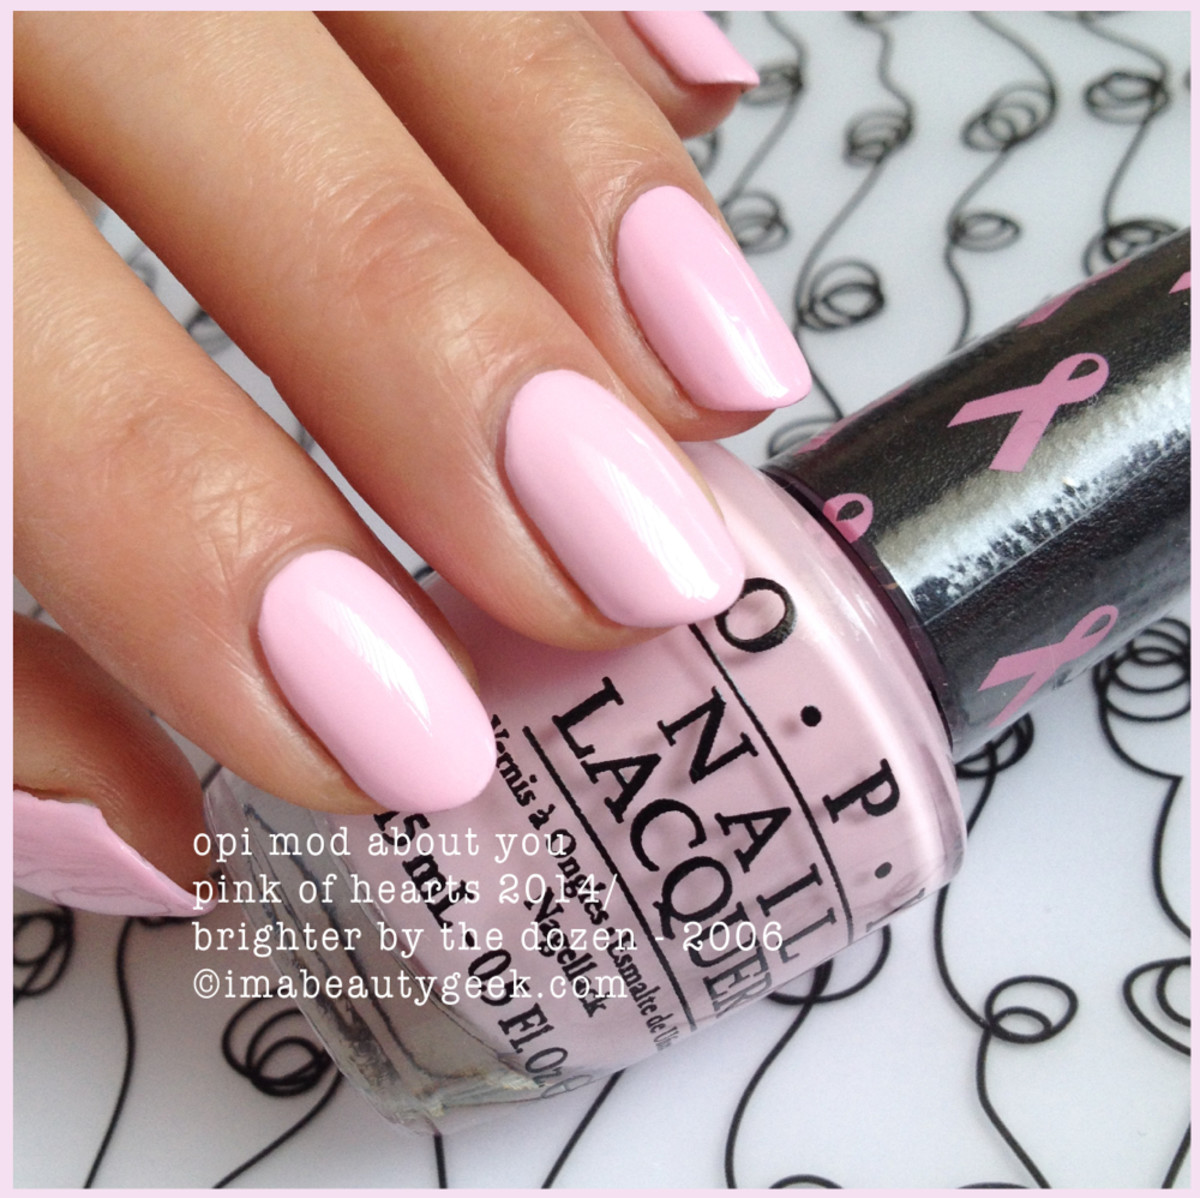 OPI Mod About You Pink of Hearts 2014 BCA